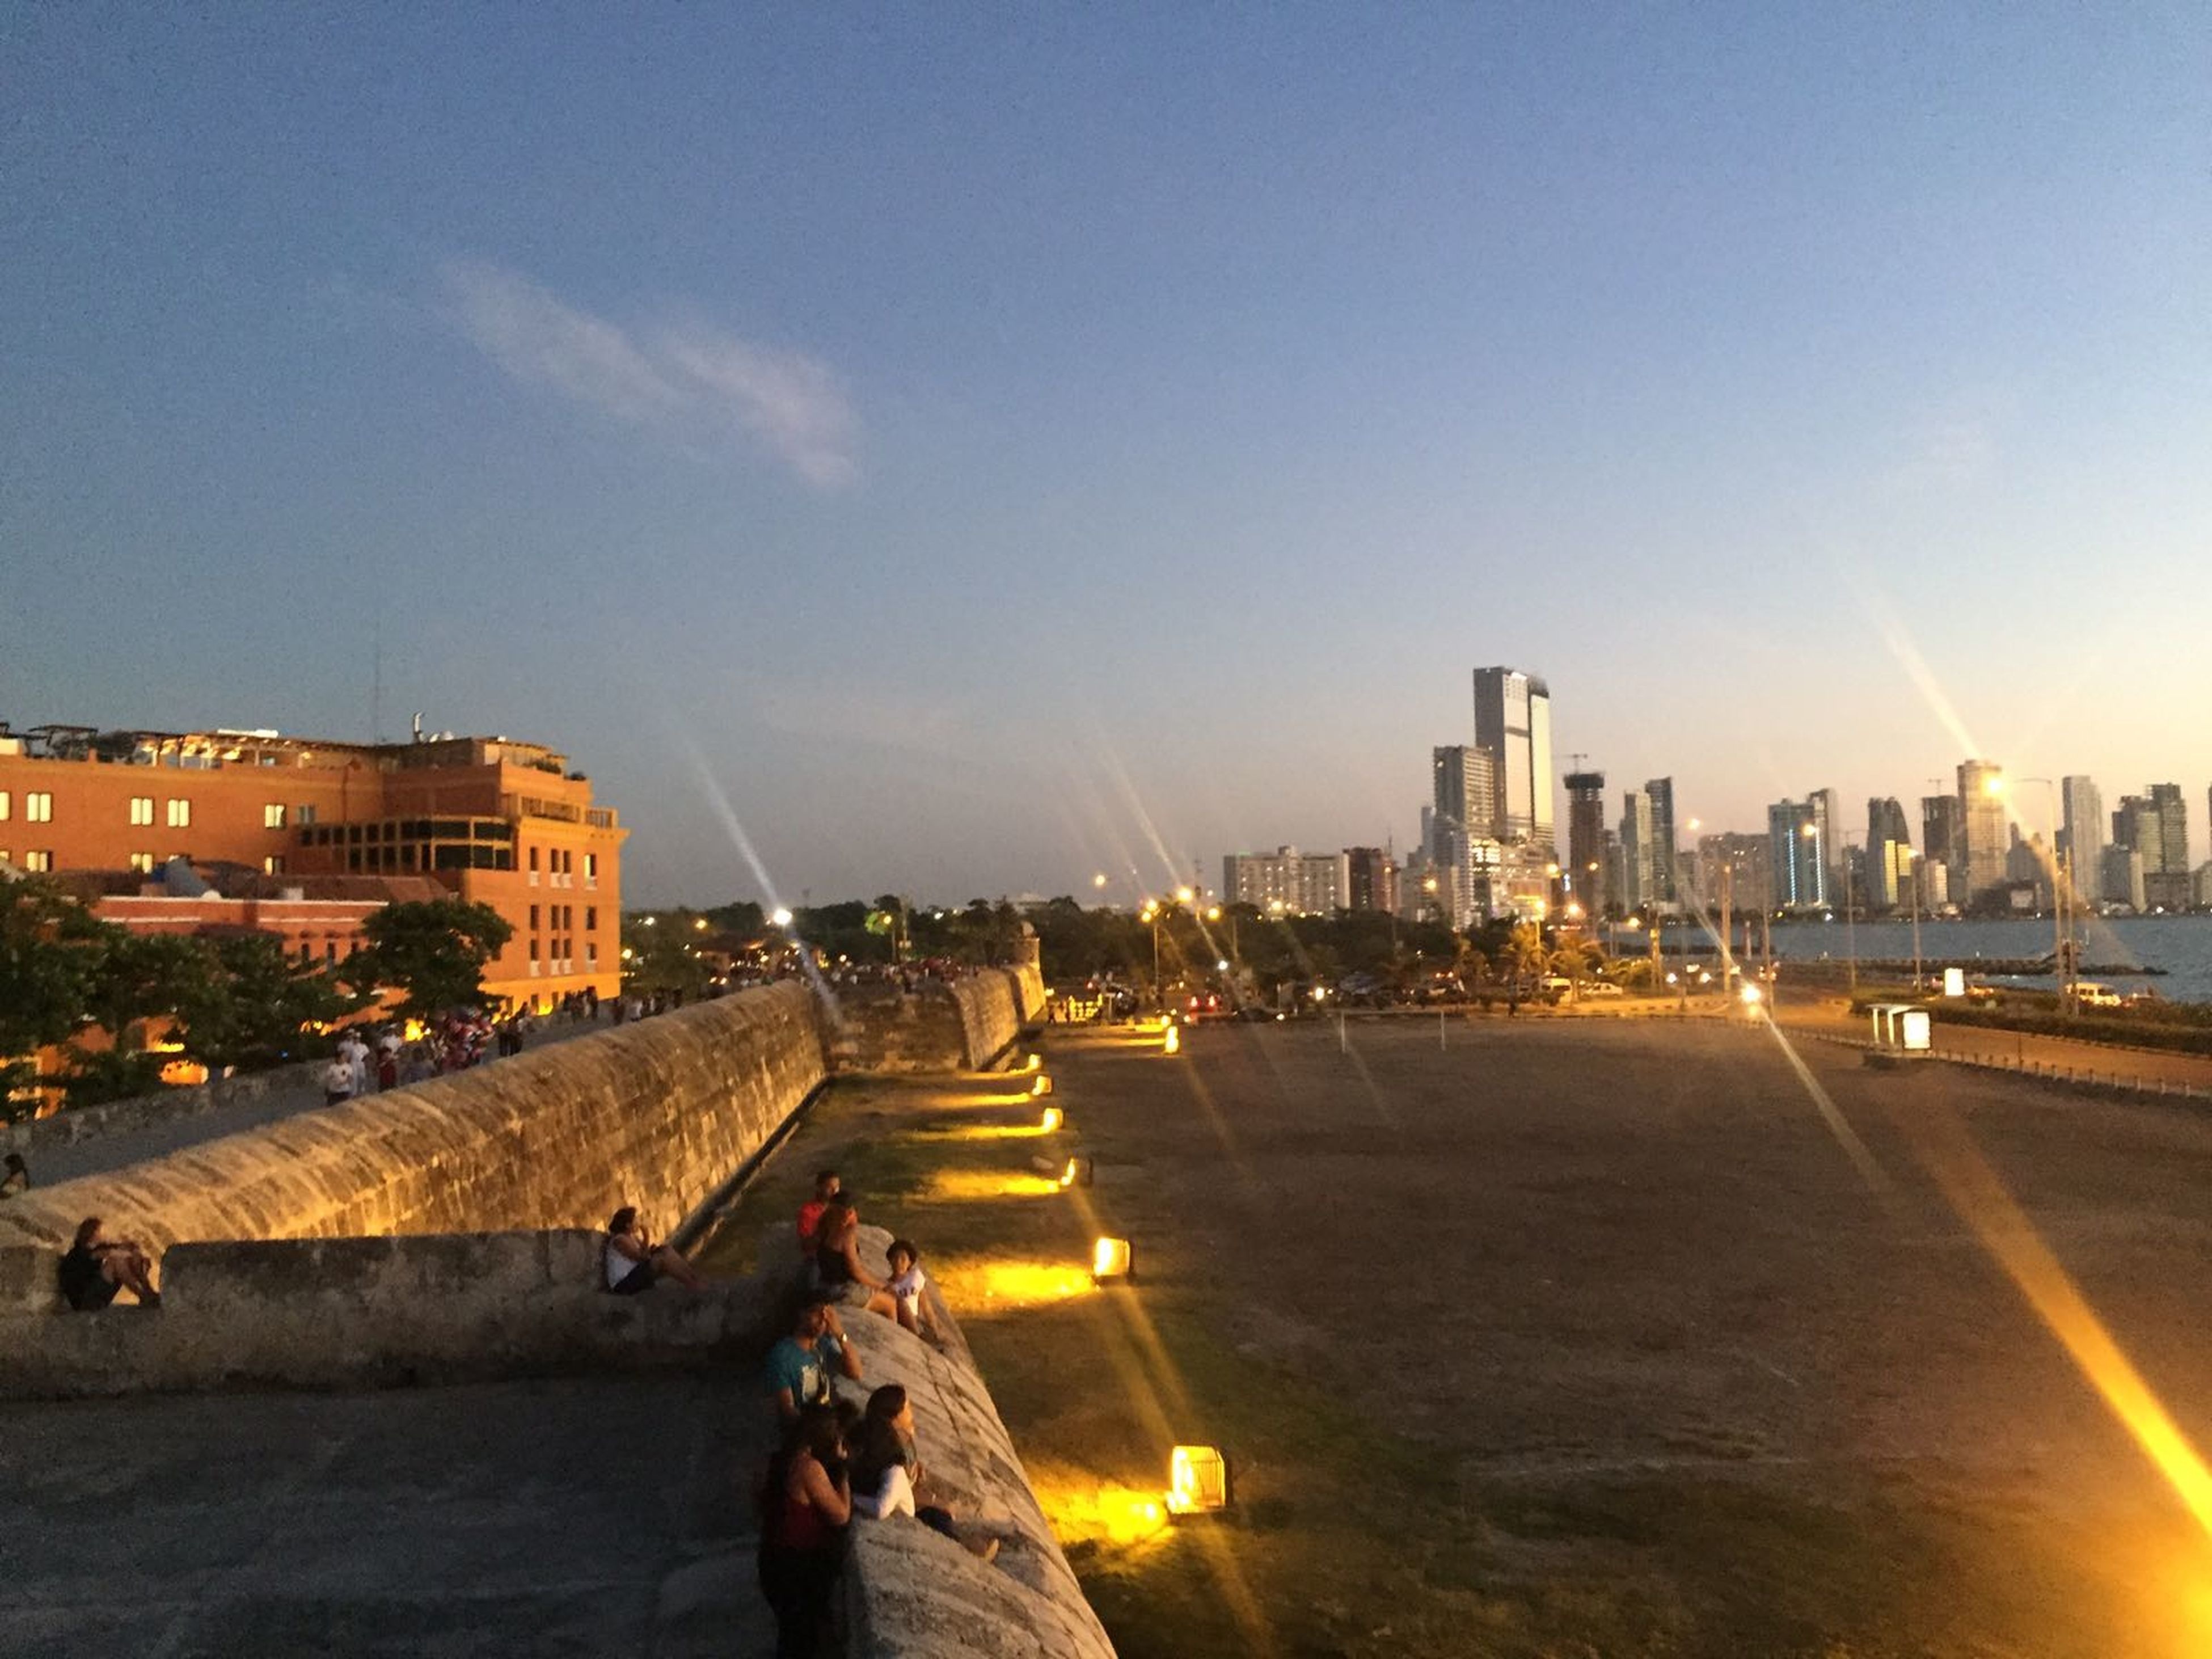 city, architecture, building exterior, built structure, skyscraper, cityscape, urban skyline, sky, illuminated, modern, city life, travel destinations, outdoors, downtown district, night, people